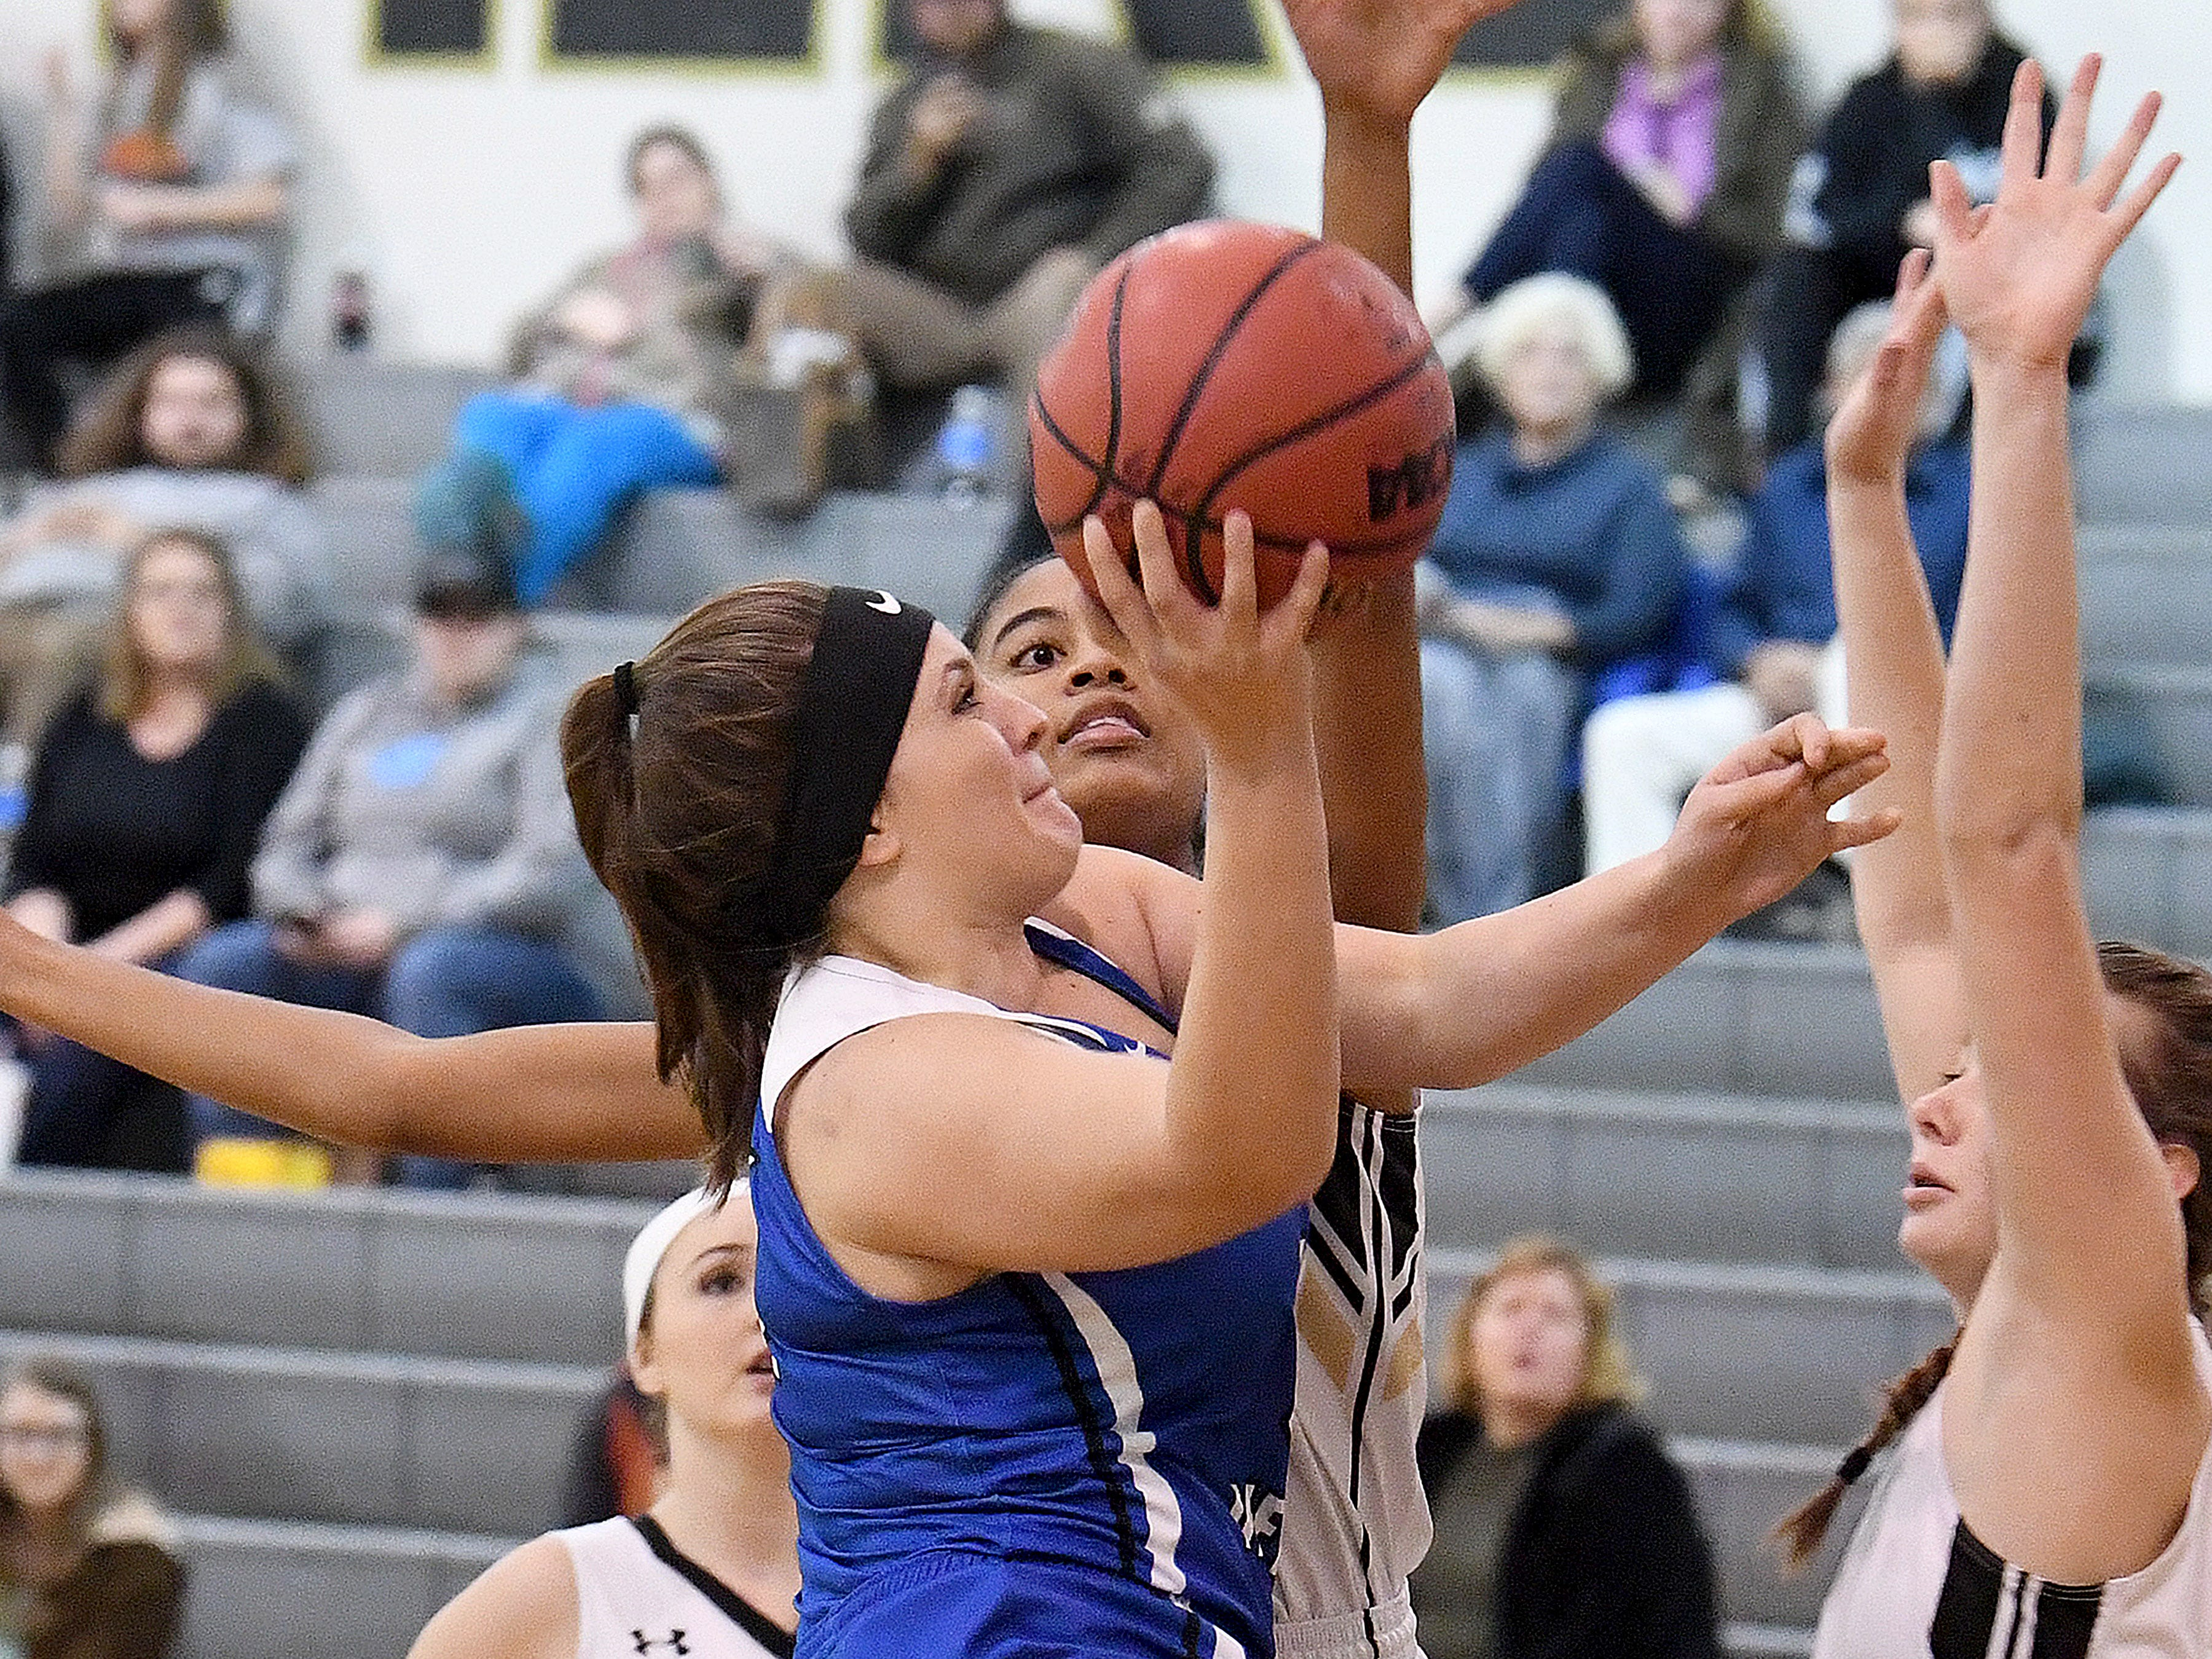 Fort Defiance's Cailin Wright takes the ball up and shoots during a game played in Swoope on Wednesday, Dec. 5, 2018.